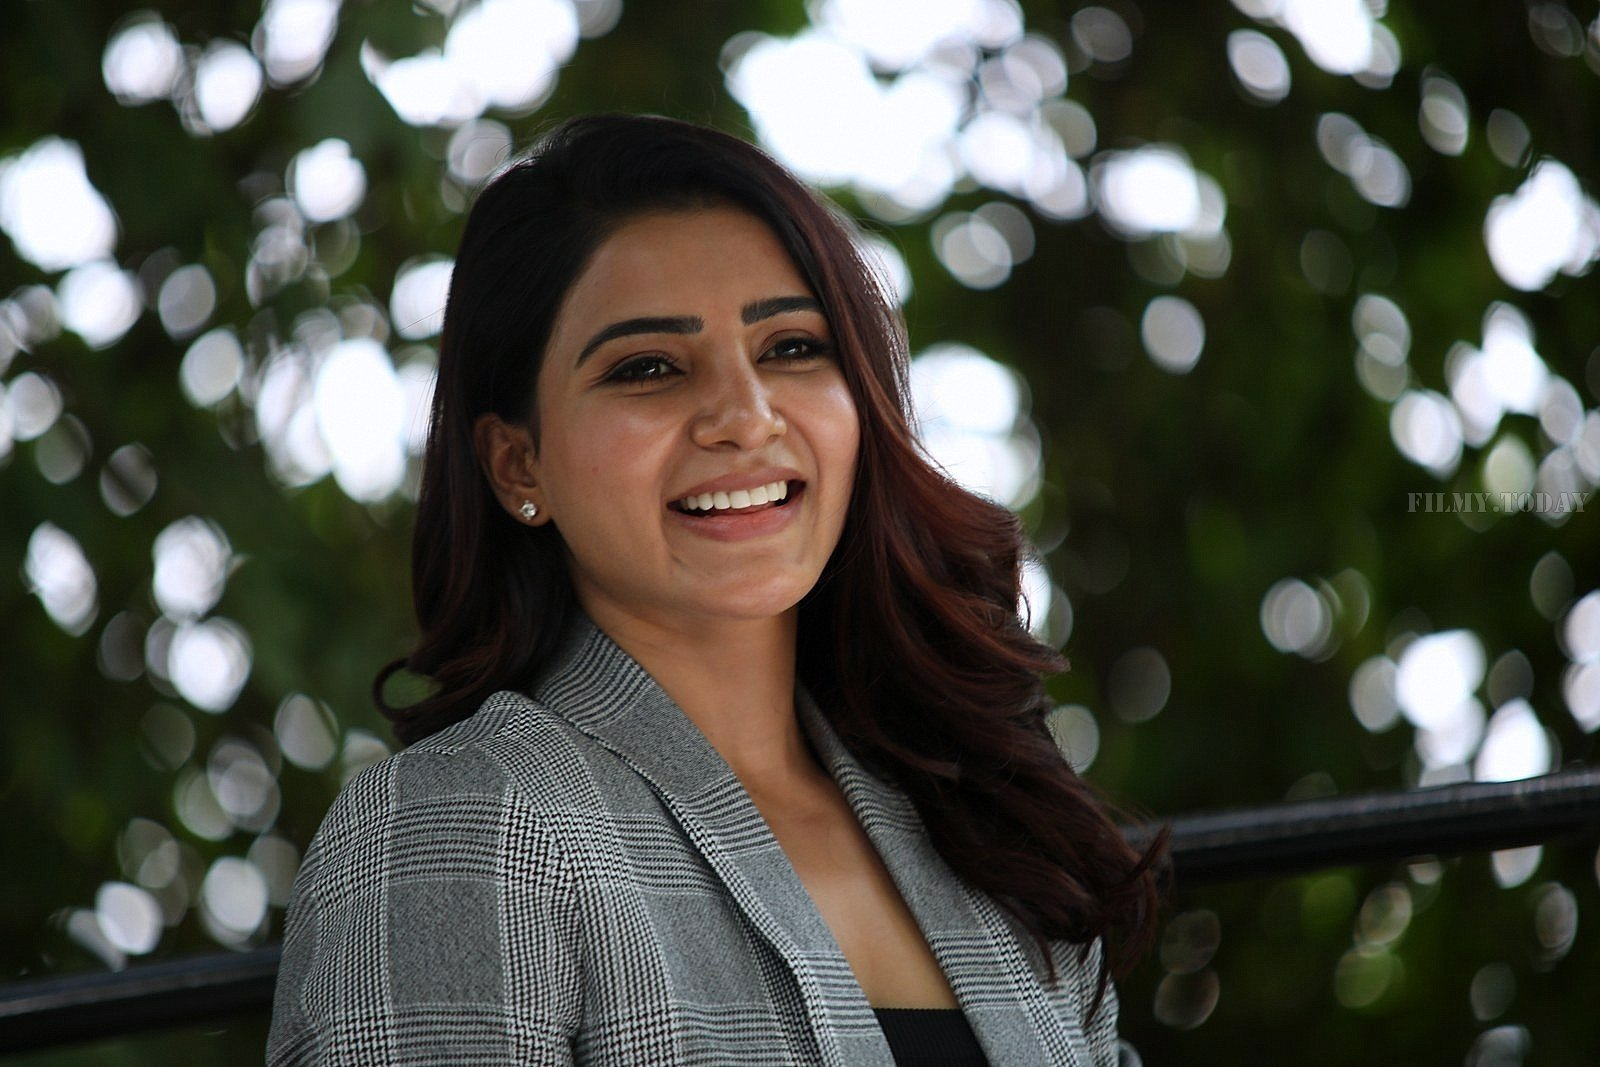 Samantha New Stills